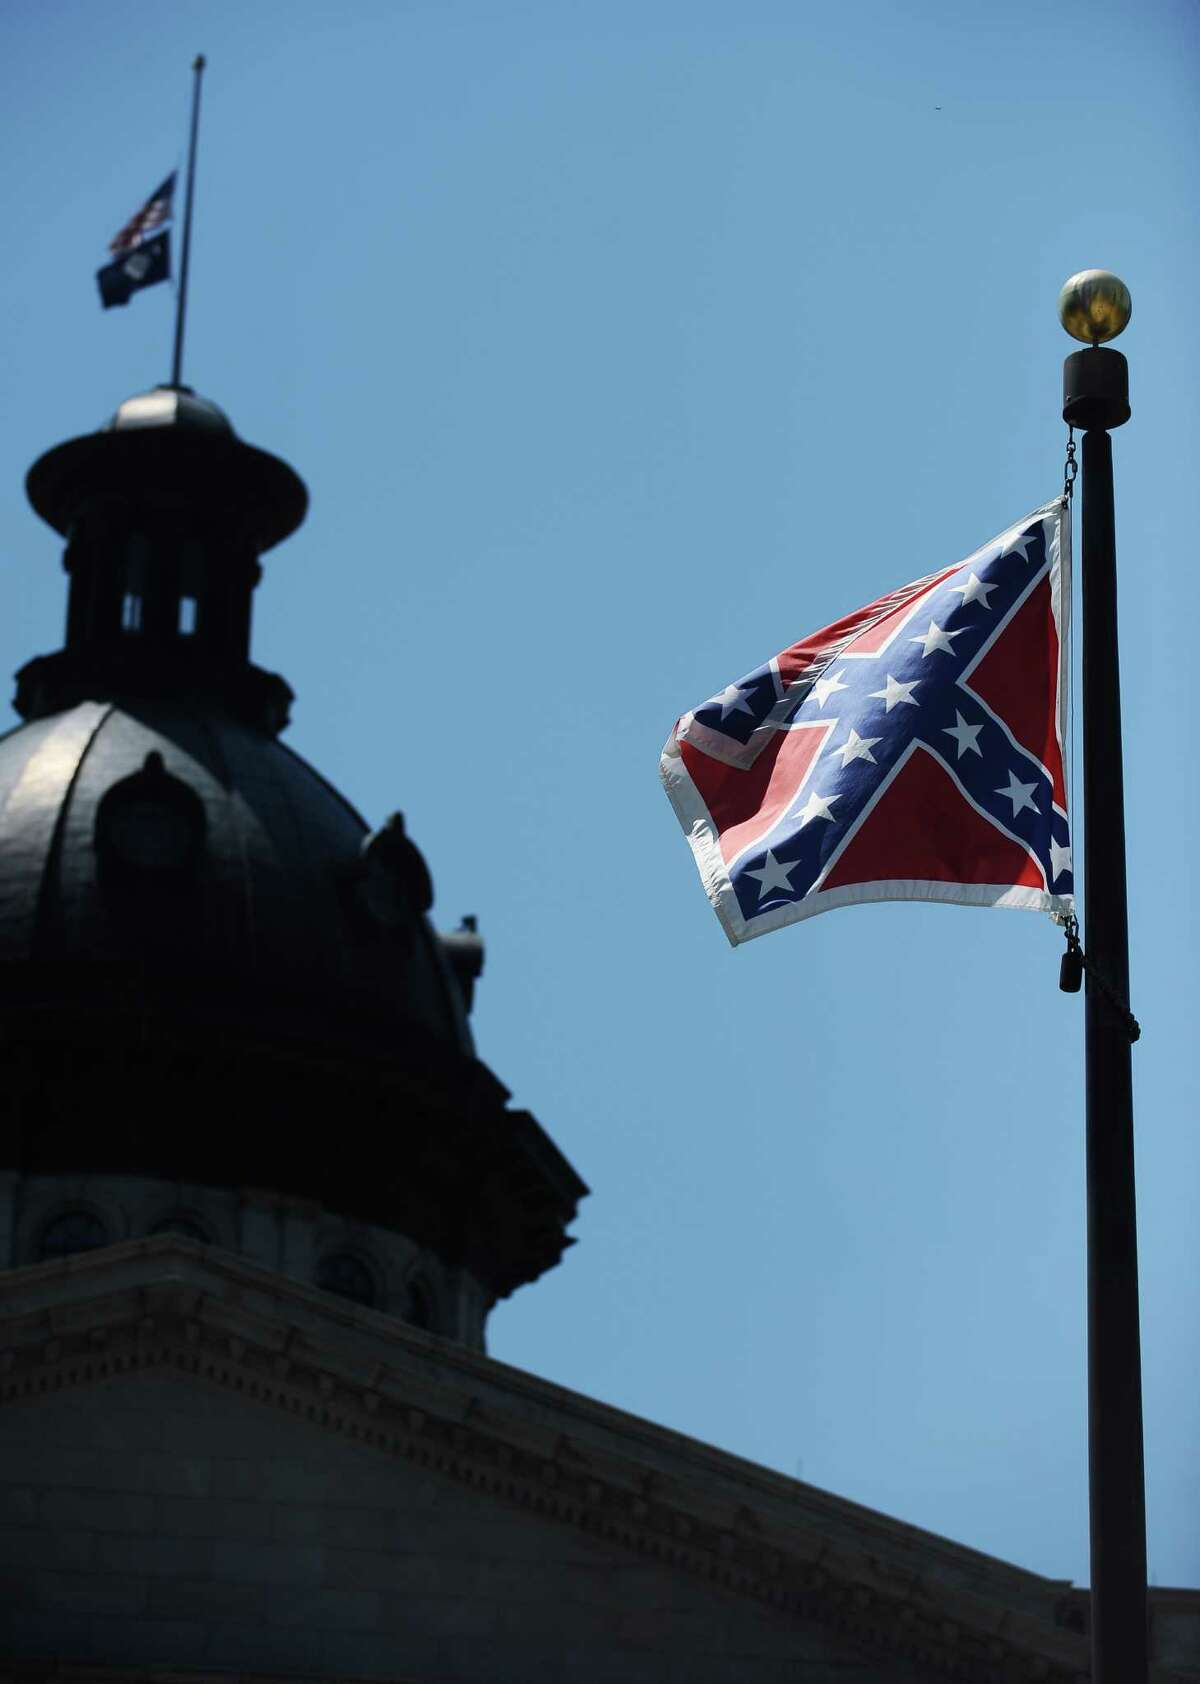 A number of GOP presidential candidates had foot in mouth moments when asked if South Carolina should continue flying the Confederate battle flag on the capital grounds. See what some of them had to say.